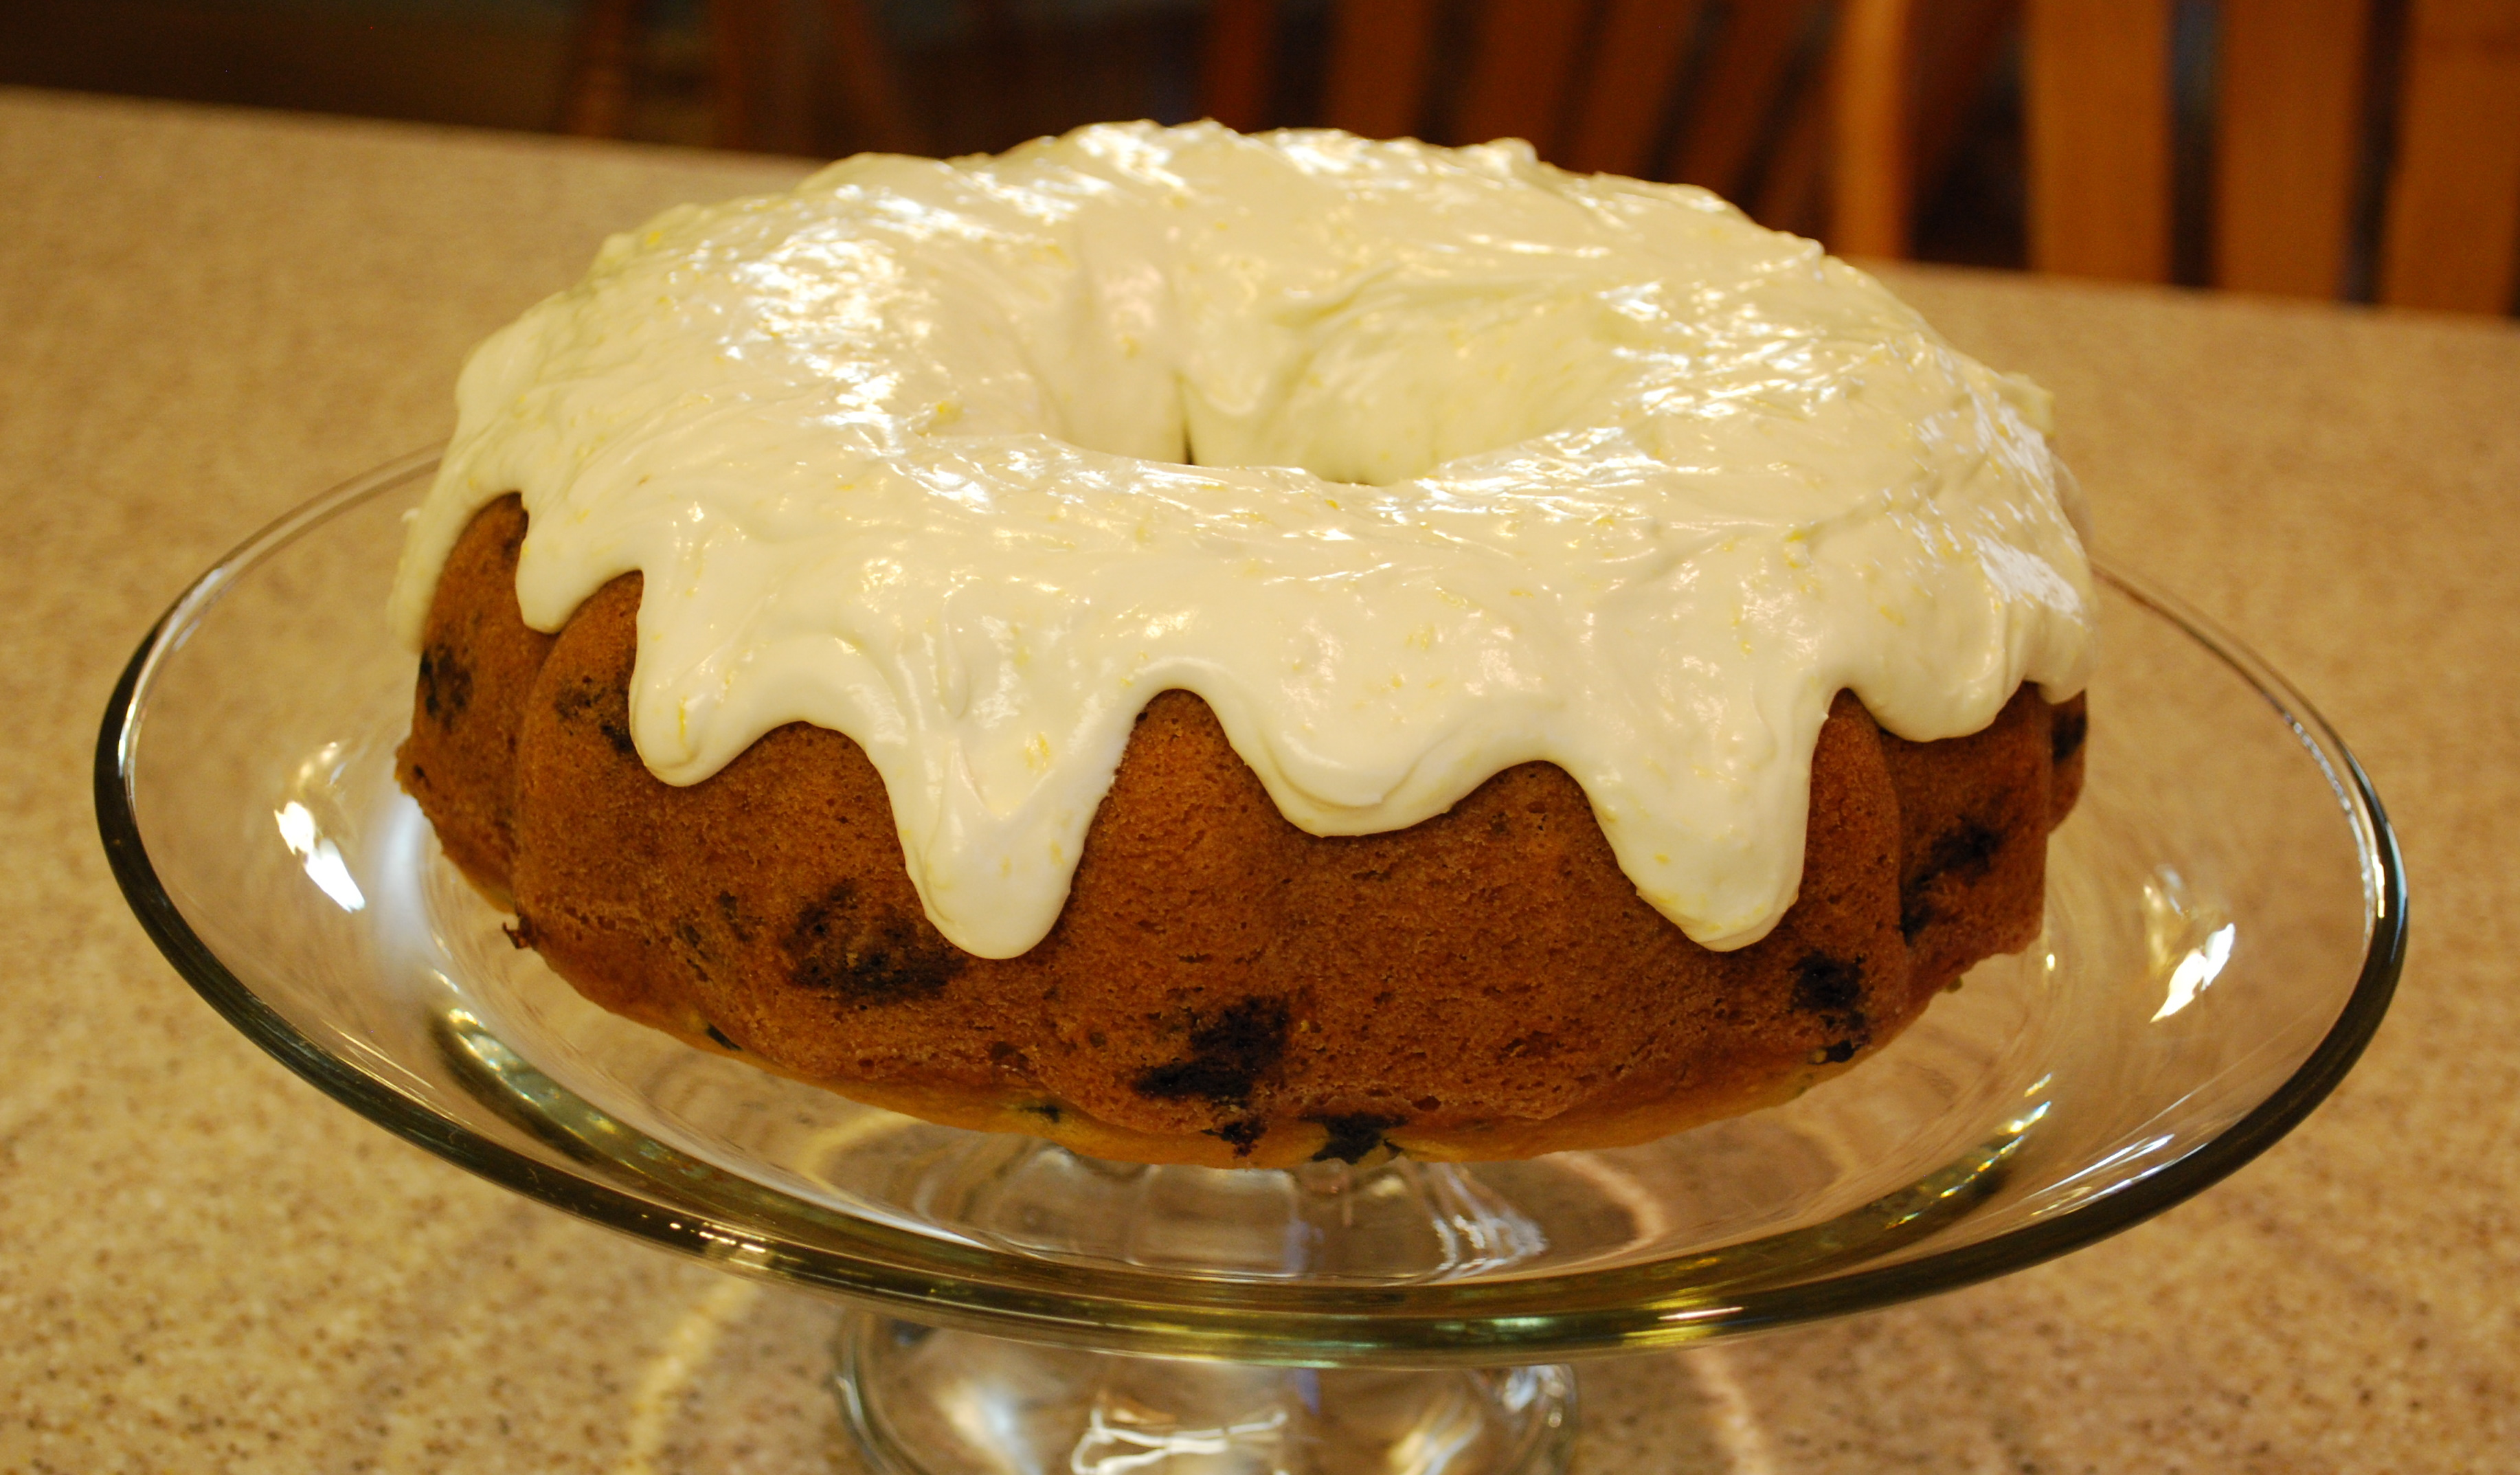 Lemon Blueberry Zucchini Cake With Cream Cheese Frosting Tasty Kitchen A Happy Recipe Community